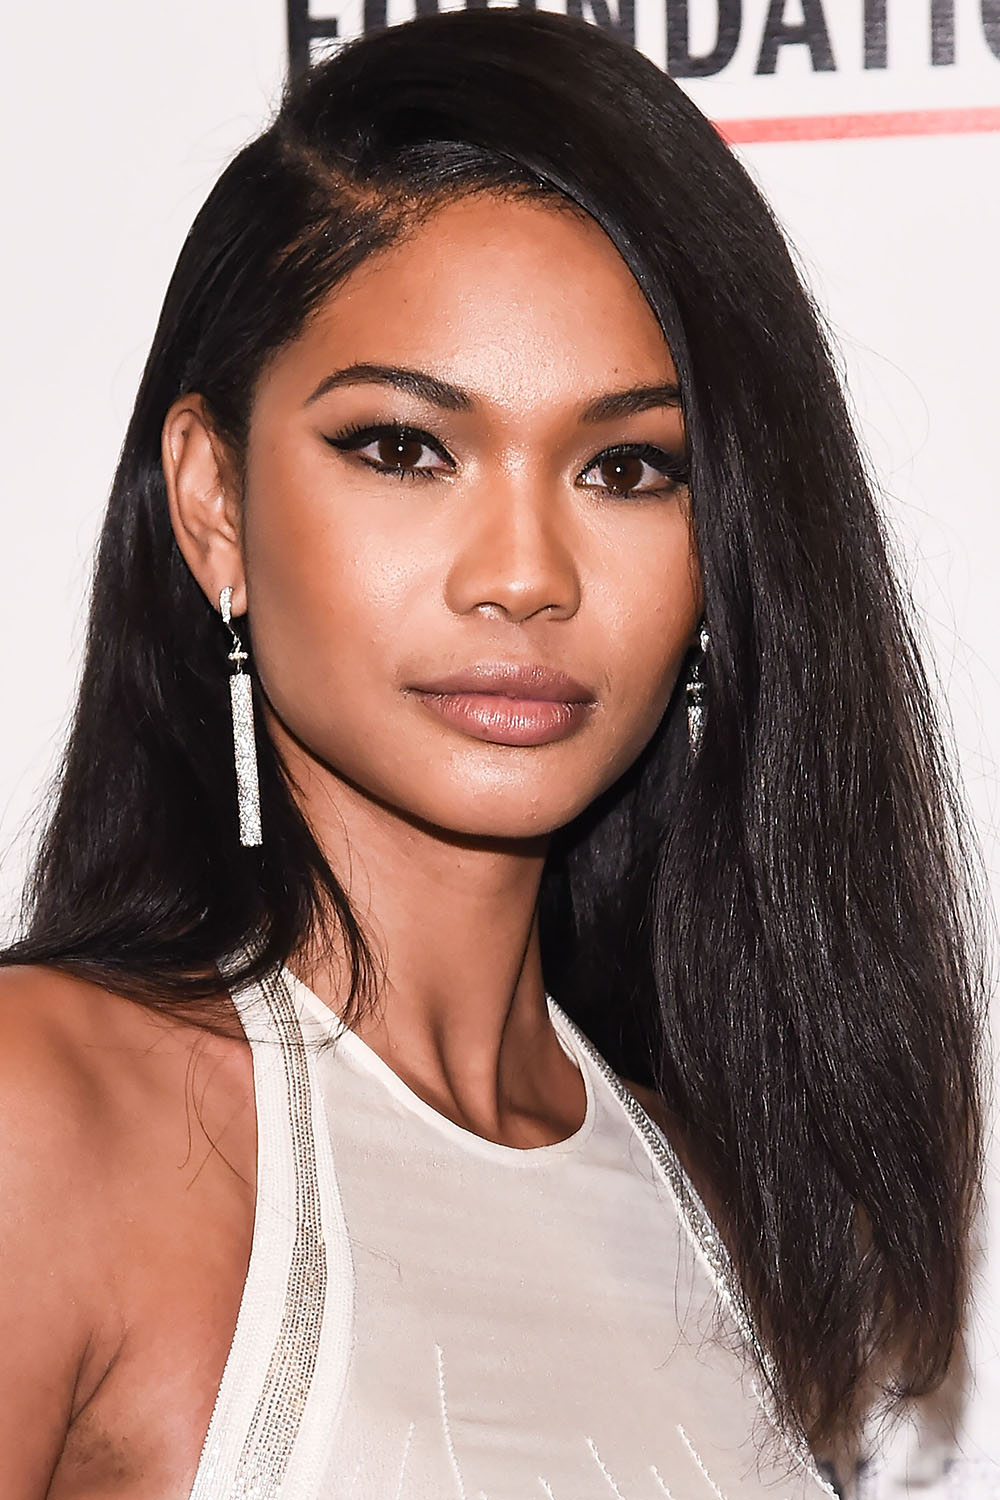 Awesome 33 Best Medium Hairstyles Celebrities With Shoulder Length Haircuts Short Hairstyles For Black Women Fulllsitofus